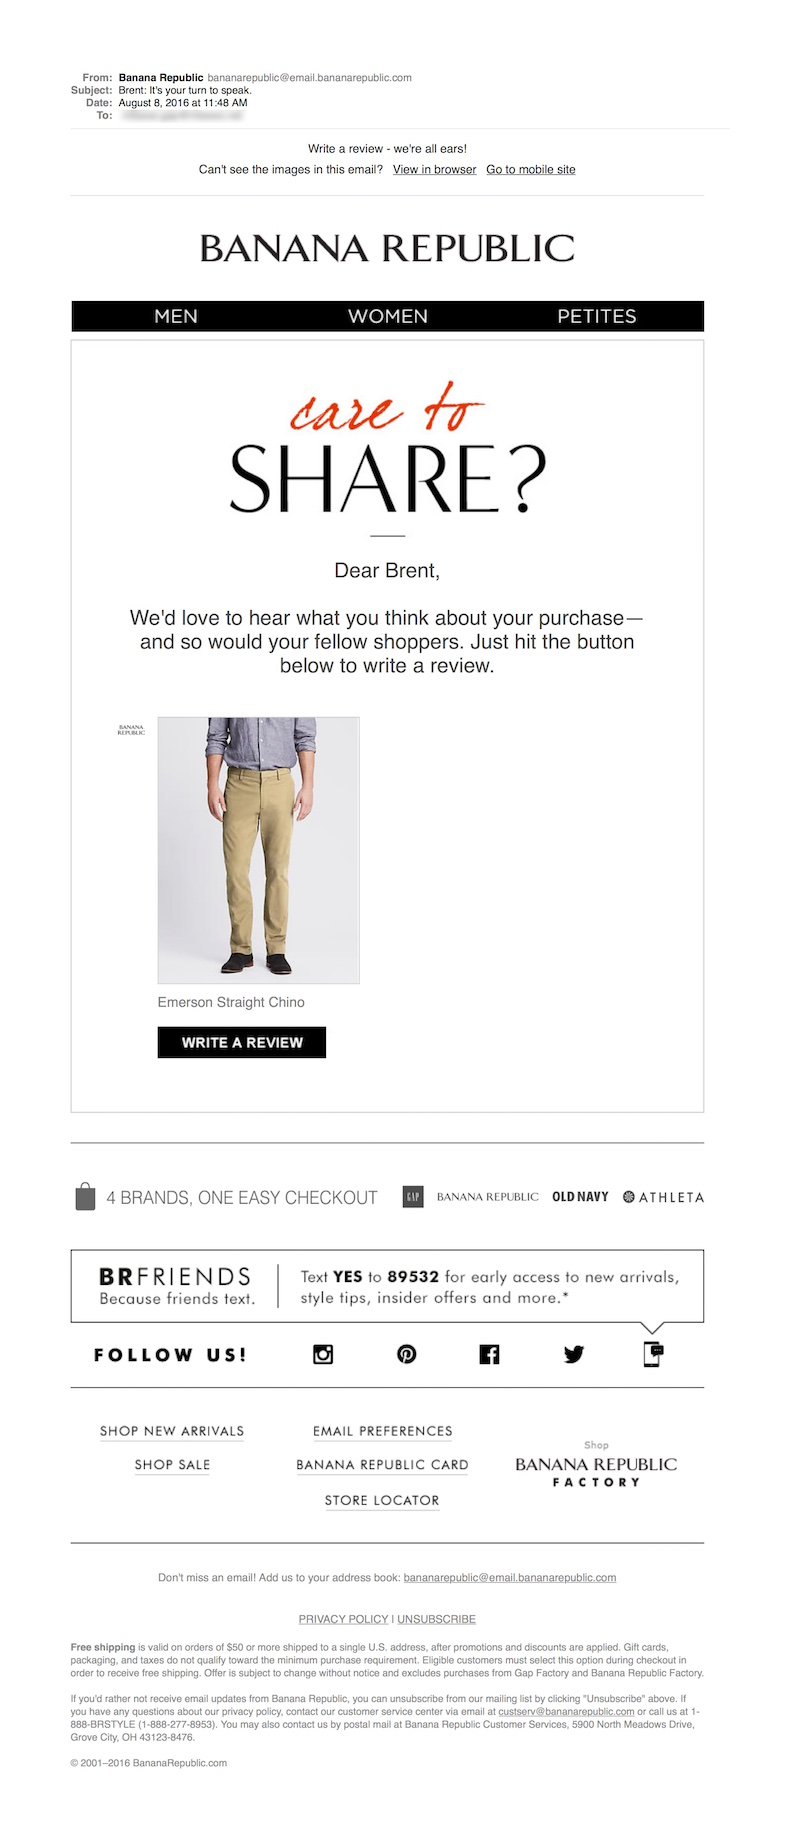 Triggered Email Secrets #5: Feedback by Banana Republic